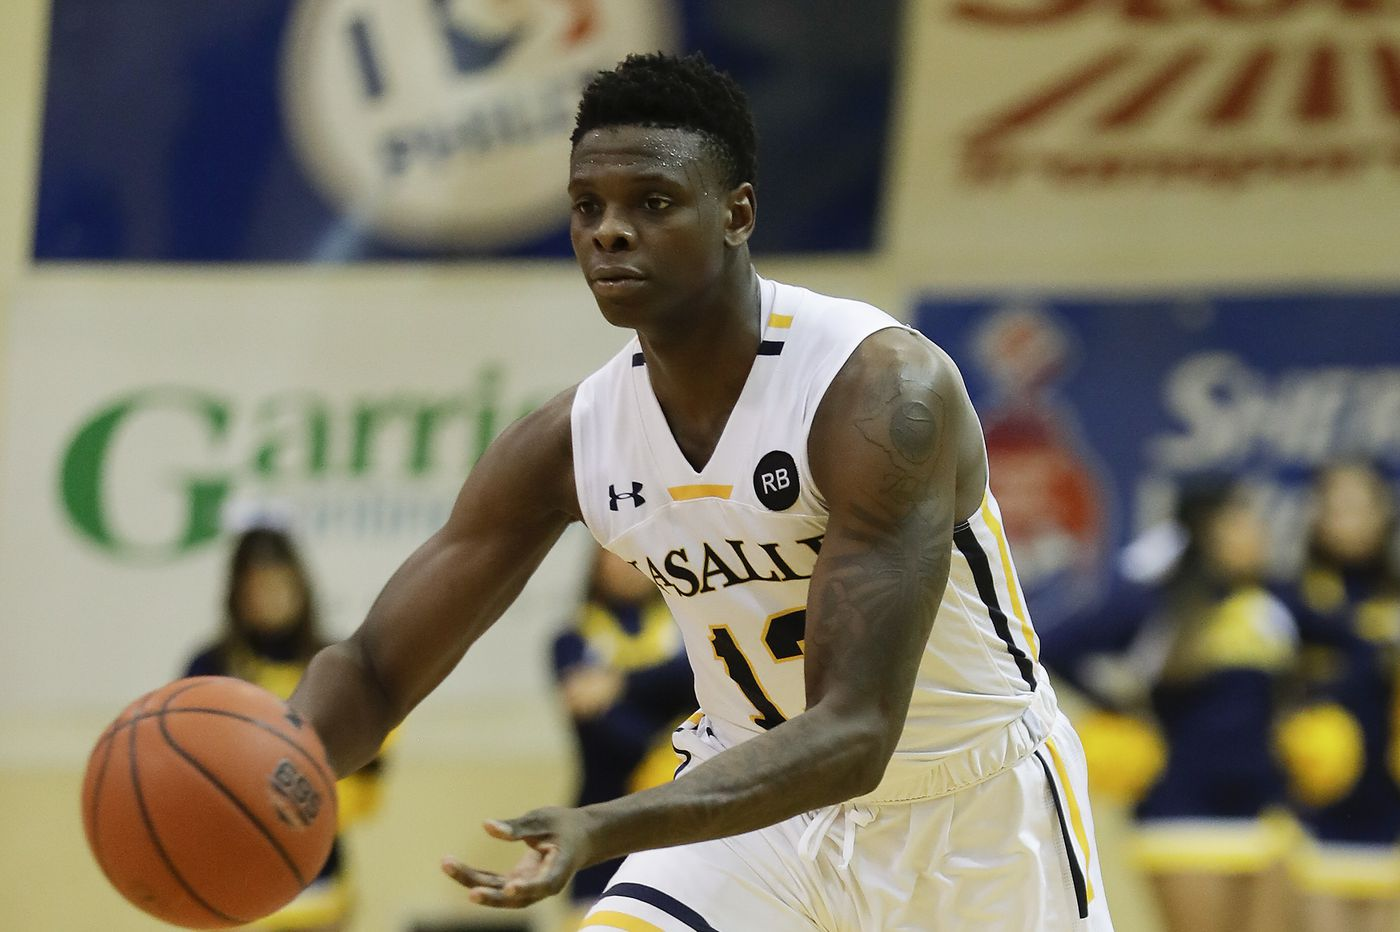 La Salle roster: Explorers add more depth on wing, size in frontcourt for next season